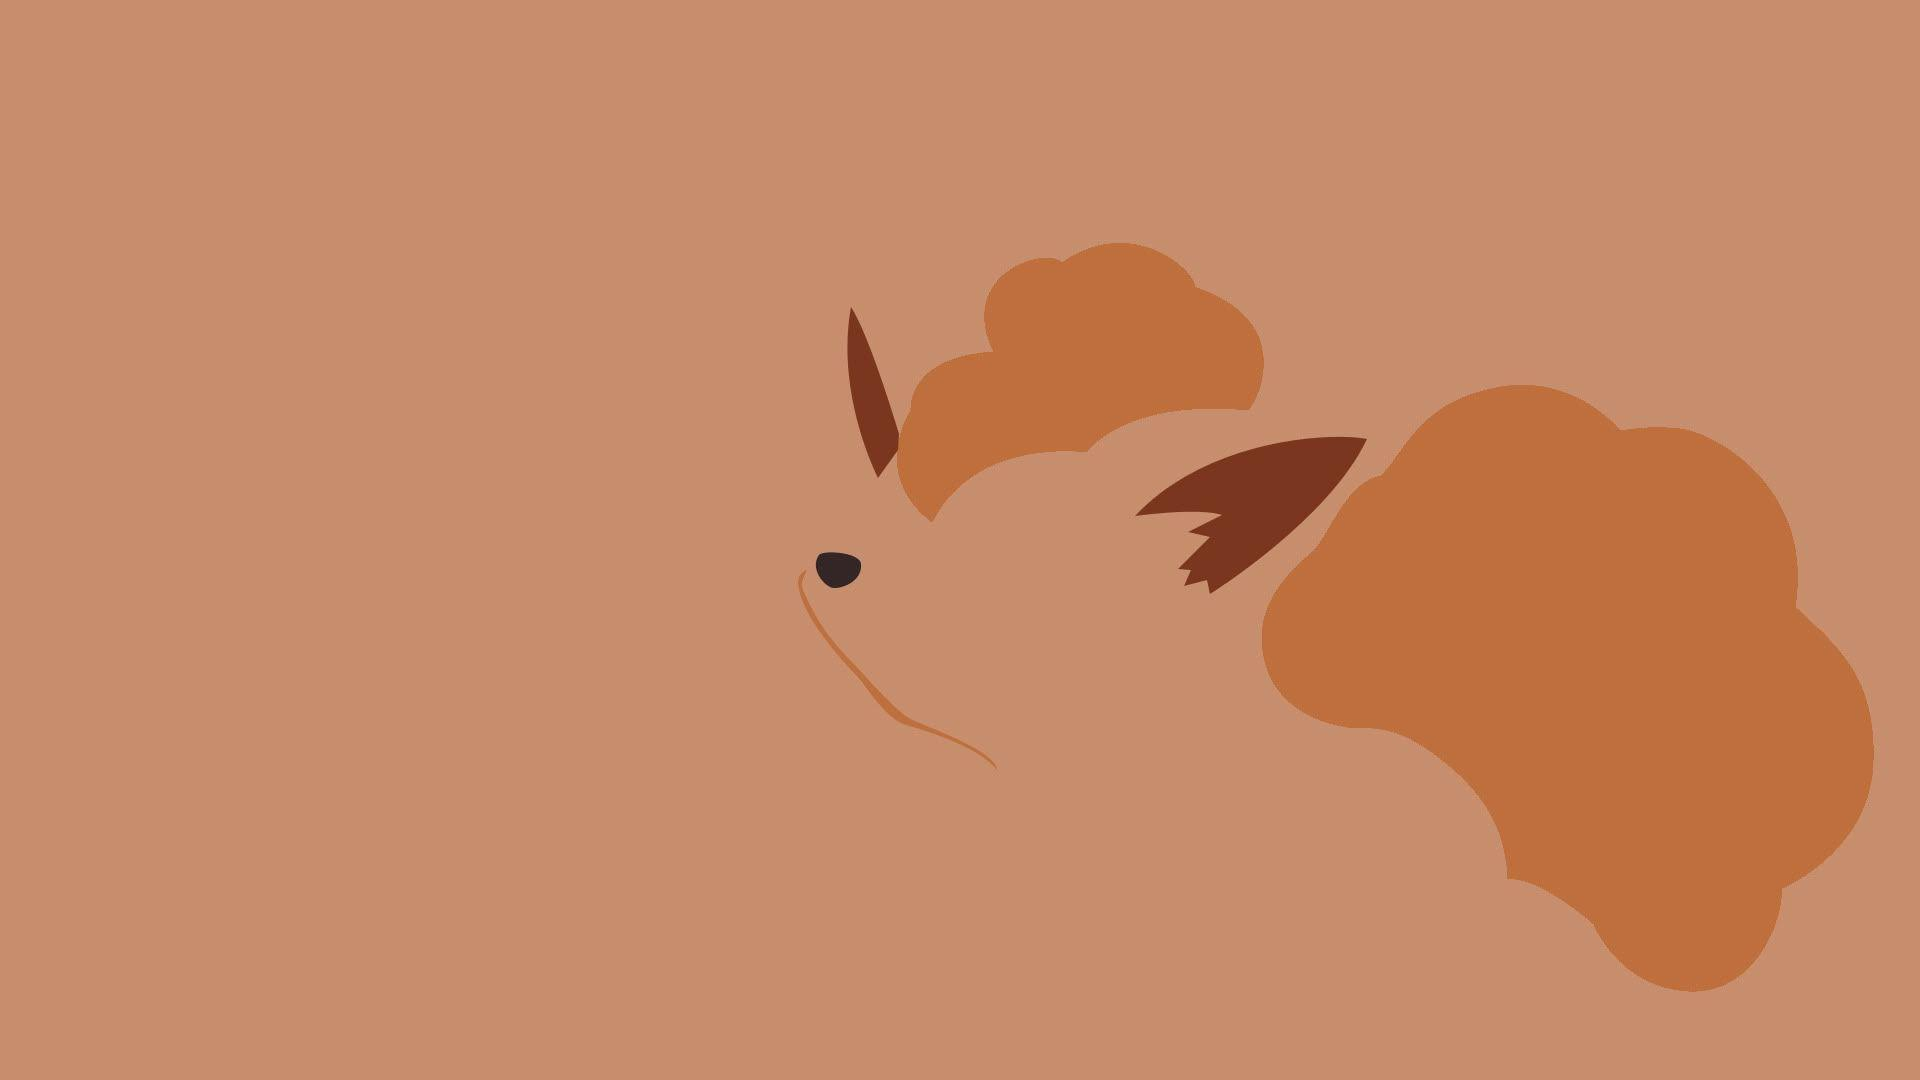 Vulpix Wallpapers - Wallpaper Cave Vulpix Wallpaper